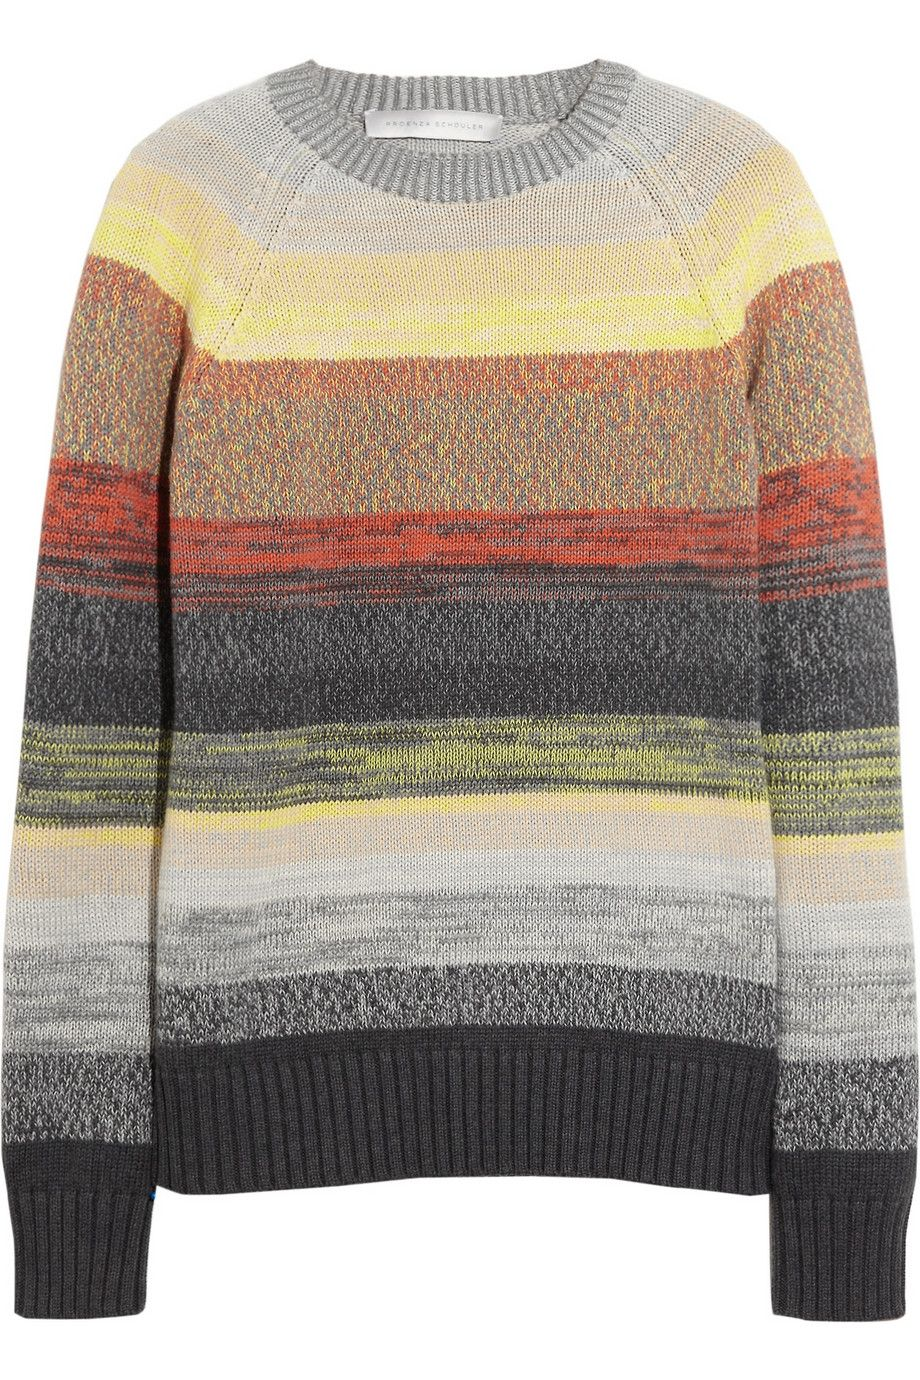 Proenza Schouler | Degradé-striped cotton sweater | NET-A-PORTER ...